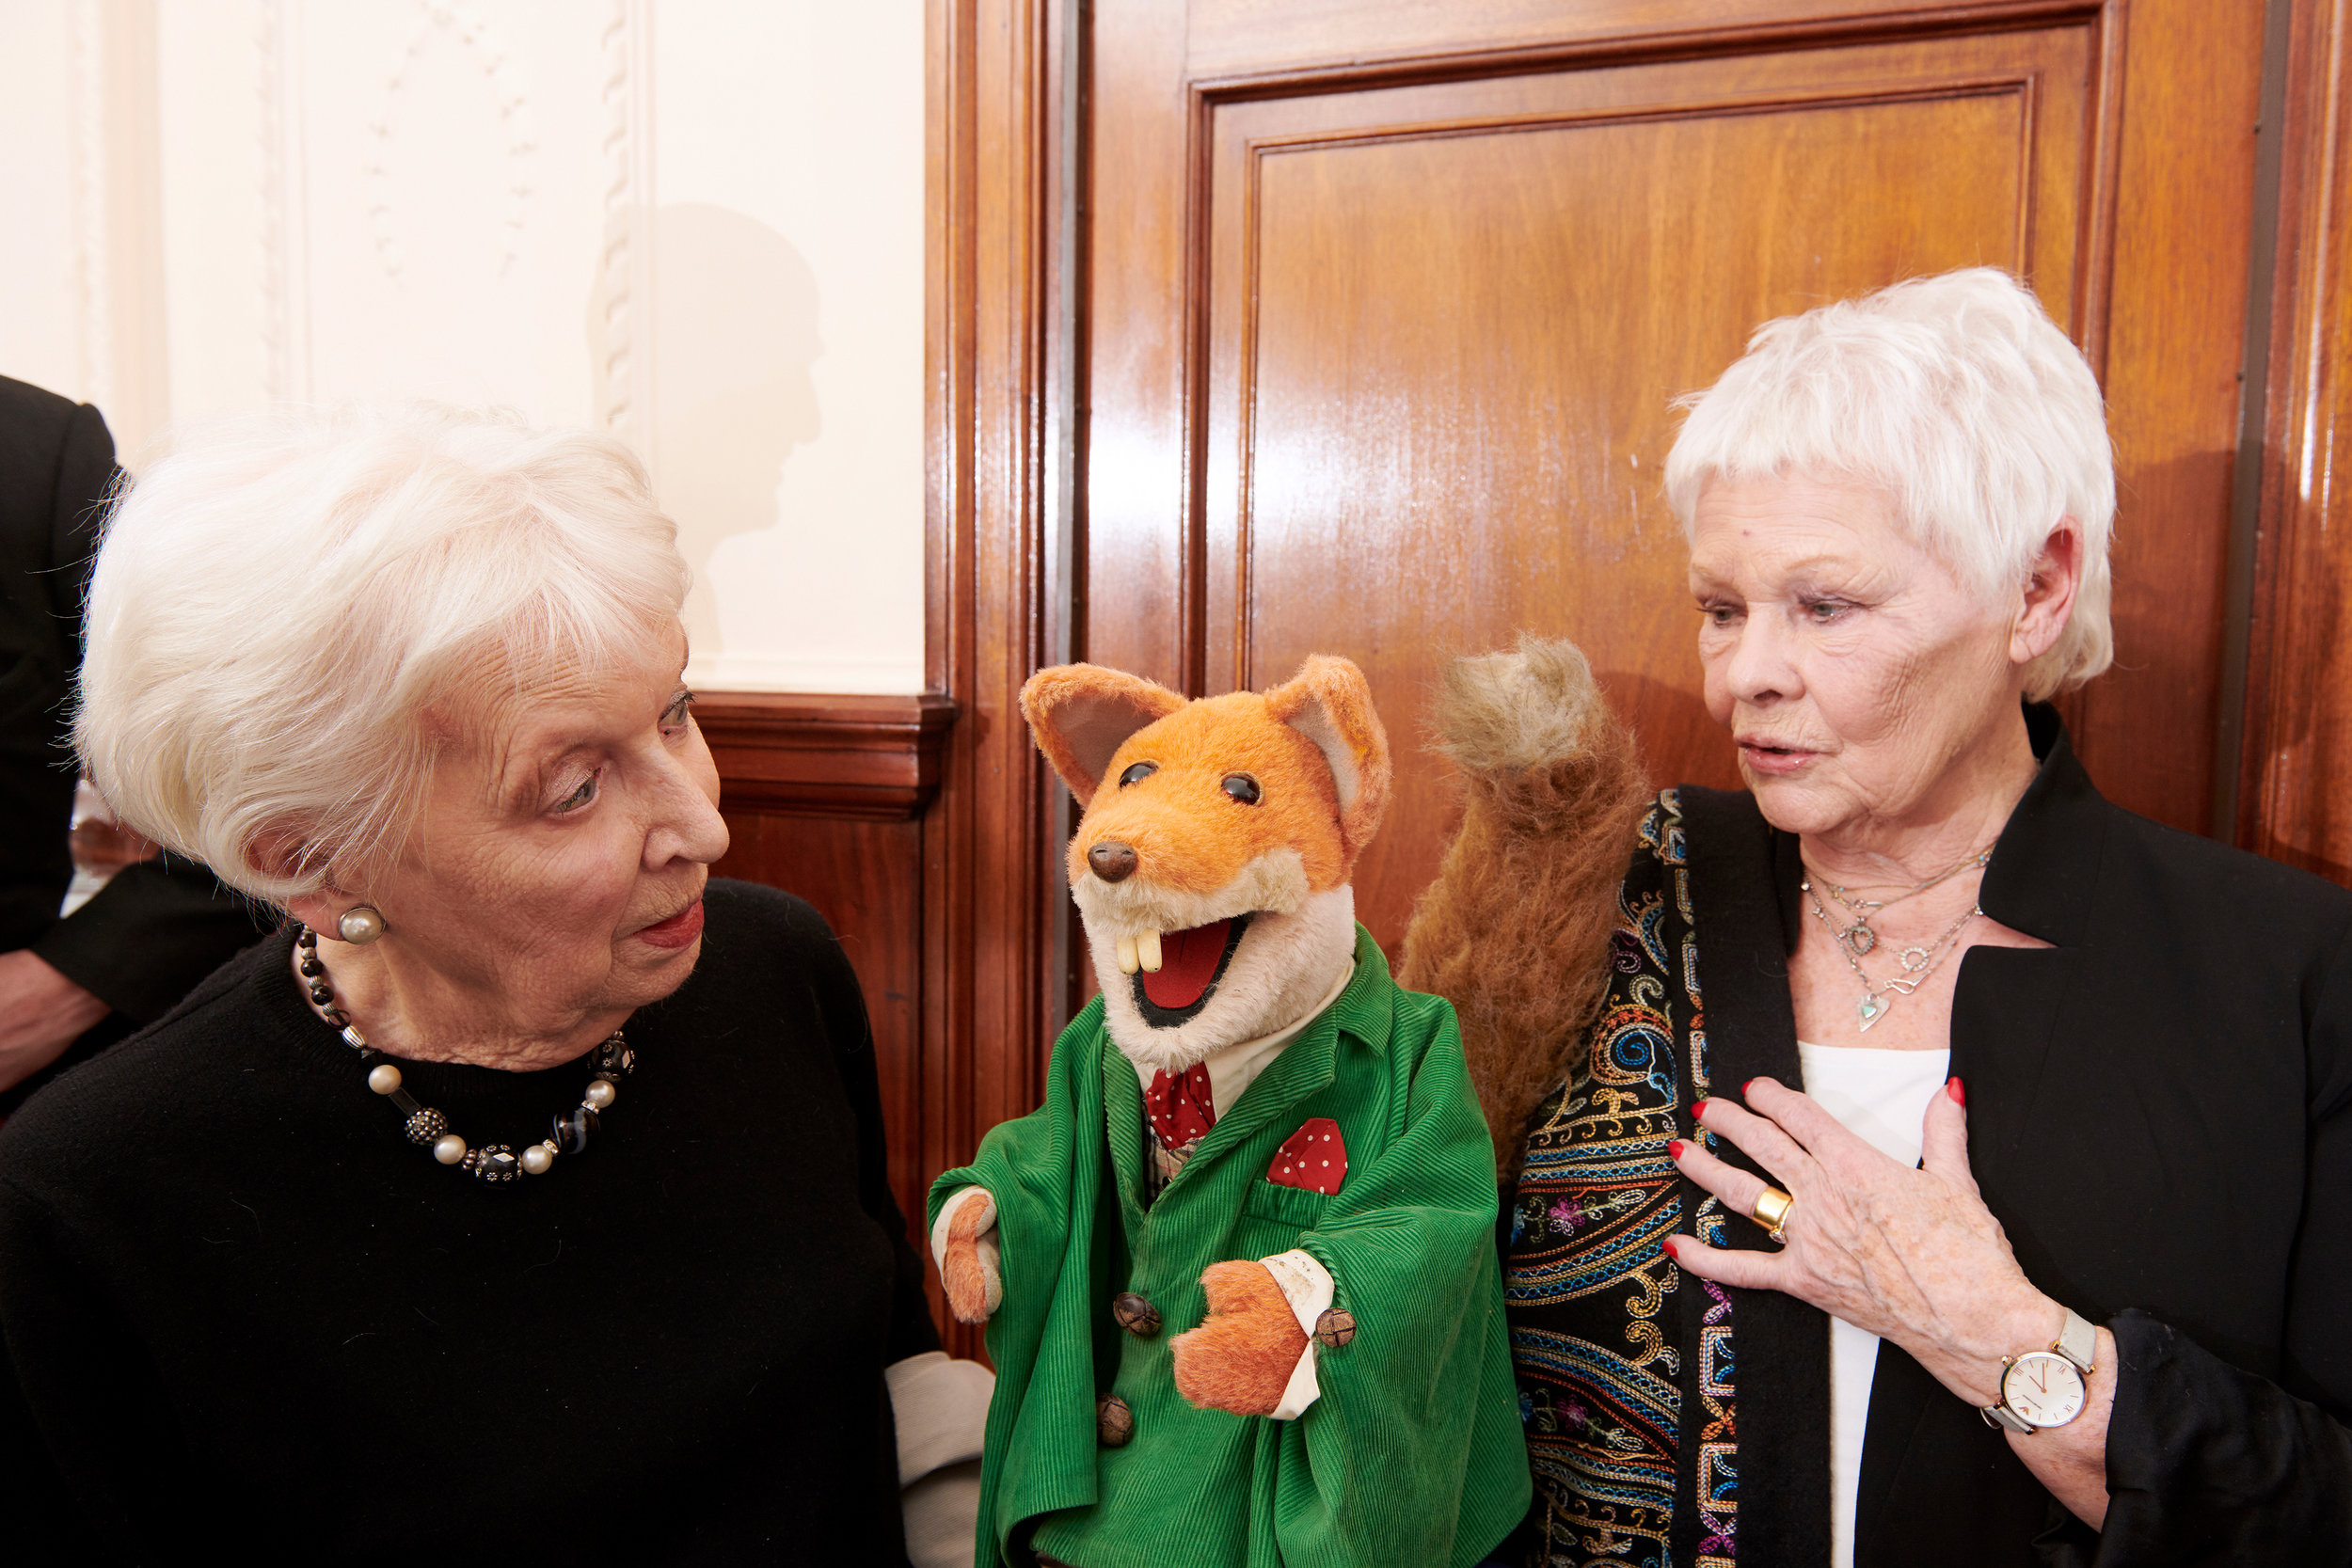 June Whitfield, Basil Brush and Judy Dench